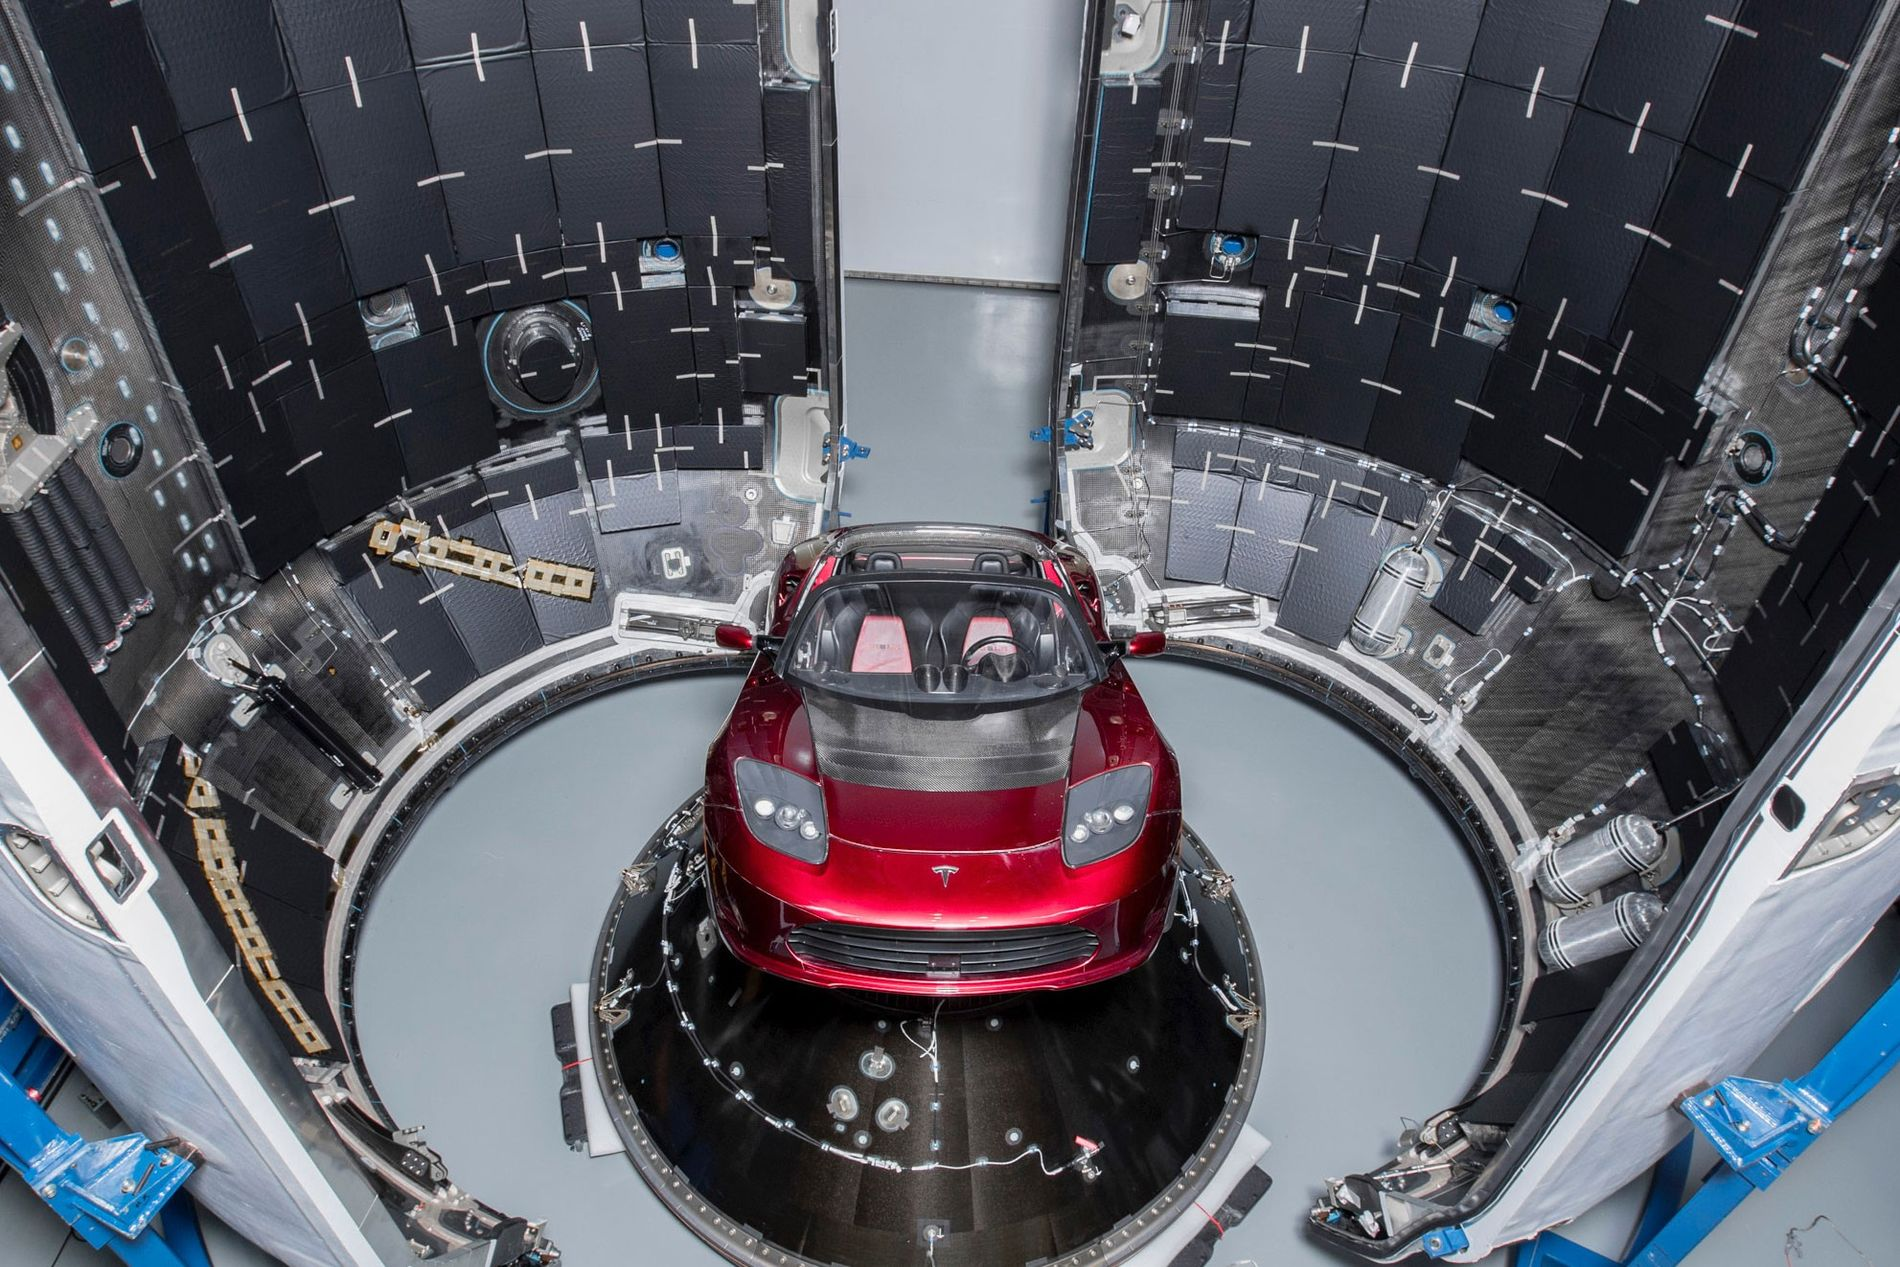 spacex_falconheavy2